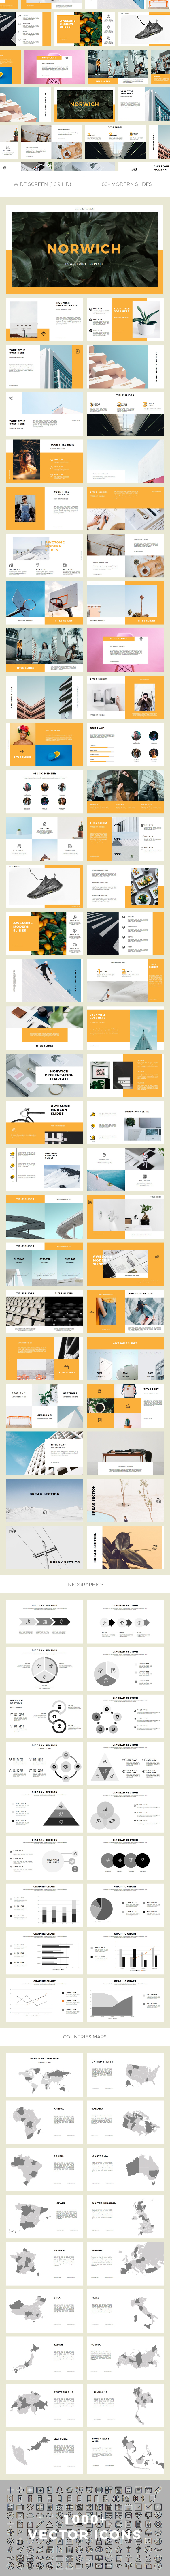 Norwich PowerPoint Template - Creative PowerPoint Templates